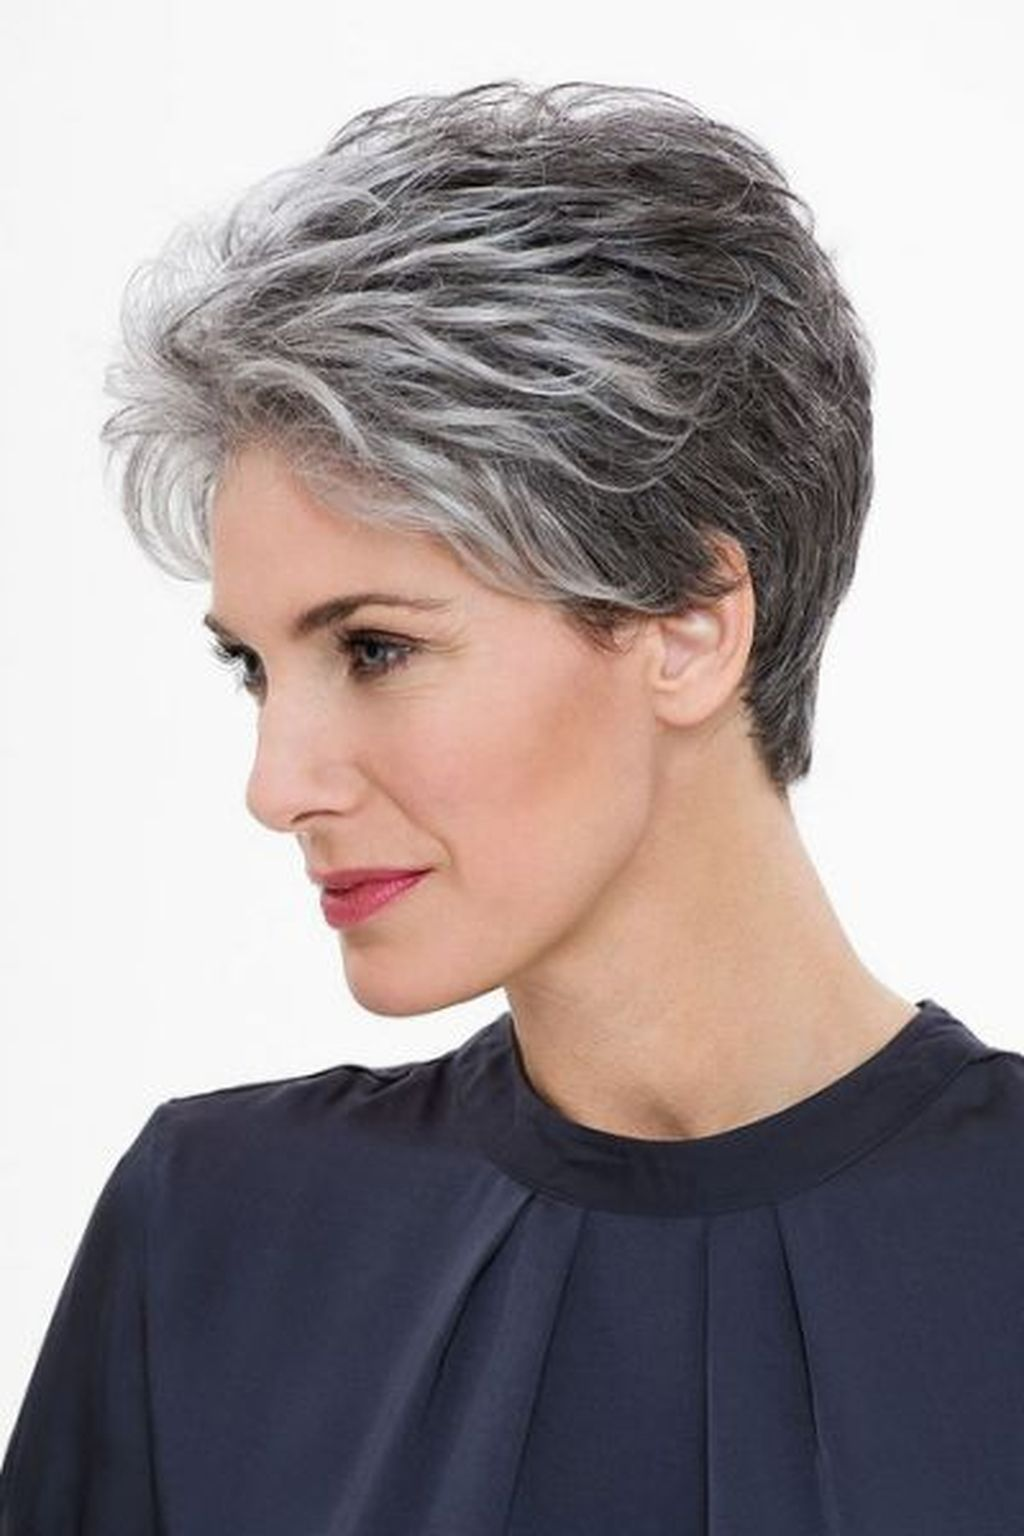 44 Cute Short Hairstyles Ideas For Women Over 50 Short Grey Hair Short Hair Styles Hair Styles For Women Over 50